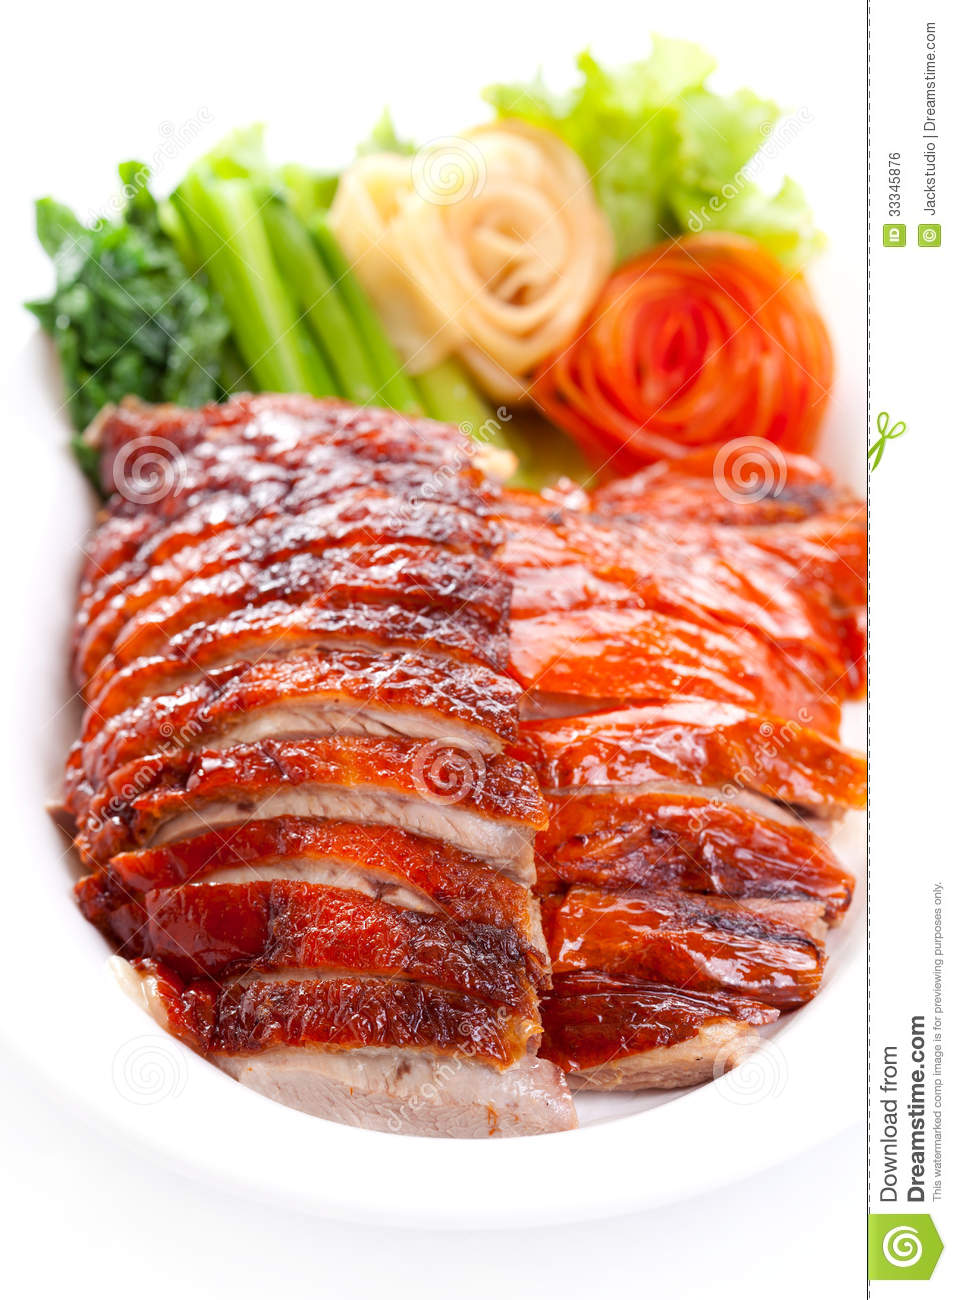 Roasted Duck And Vegetables Royalty Free Stock Image - Image: 33345876